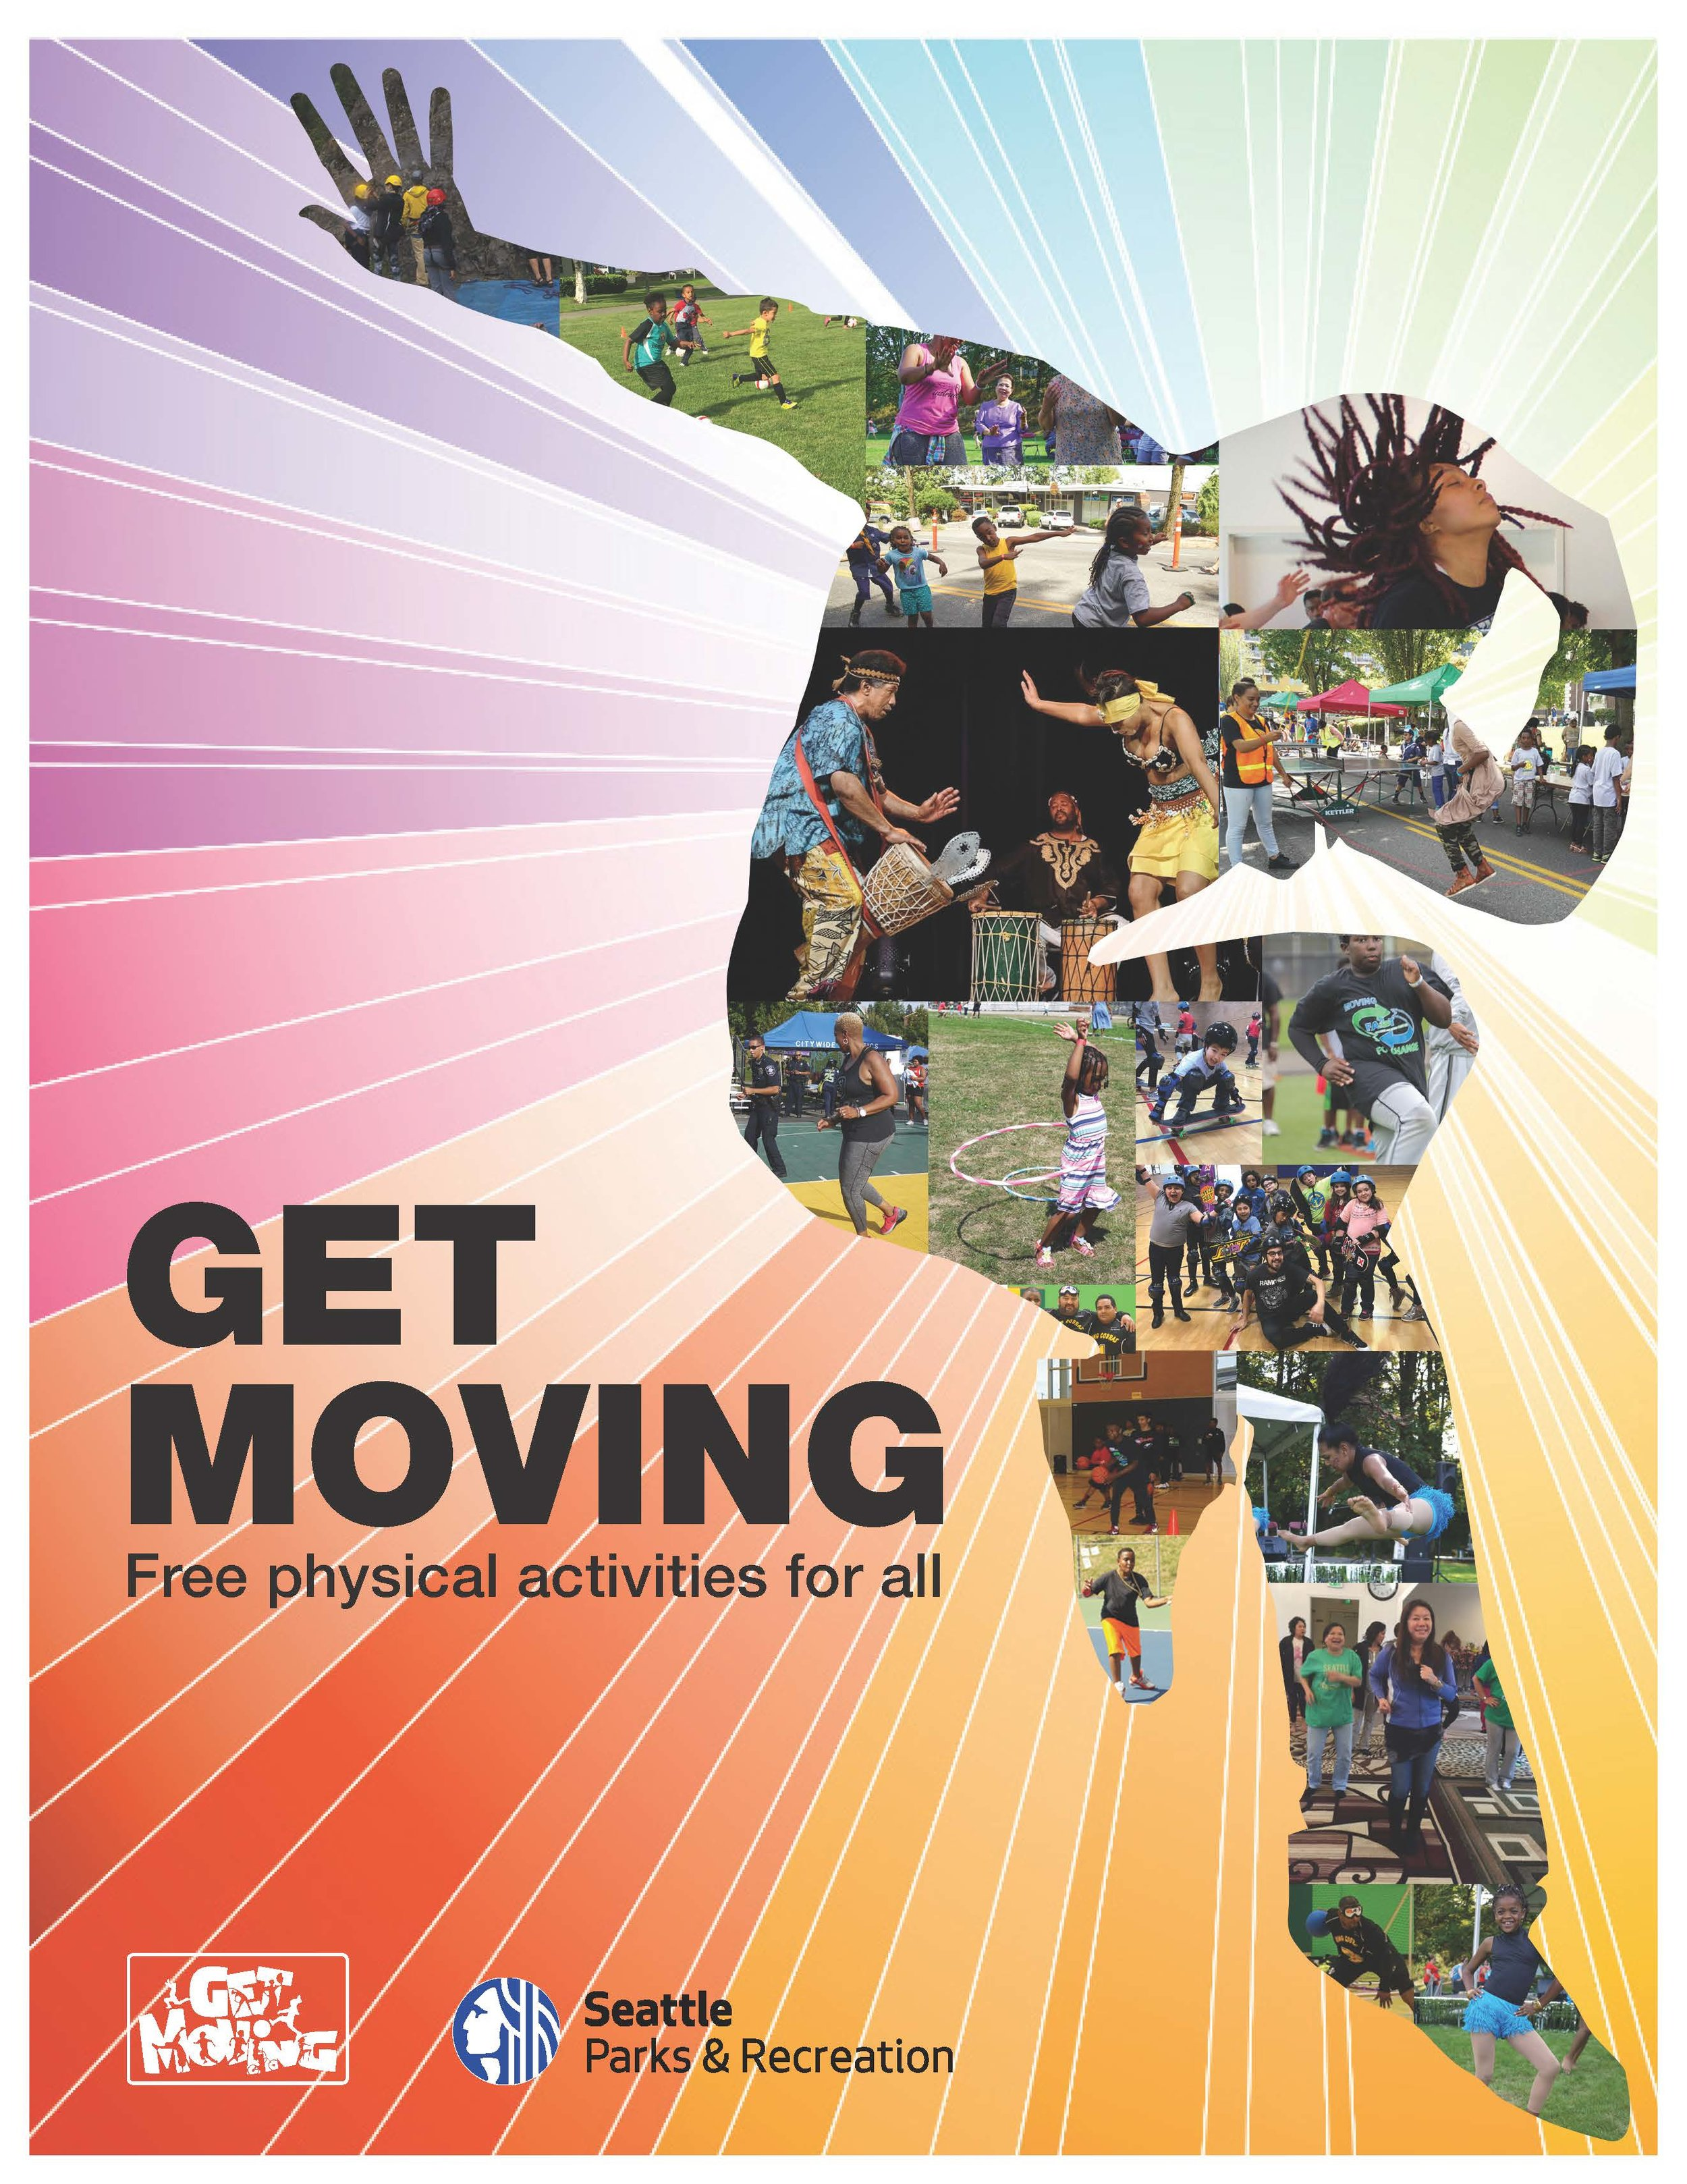 Get Moving Brochure Cover.jpg